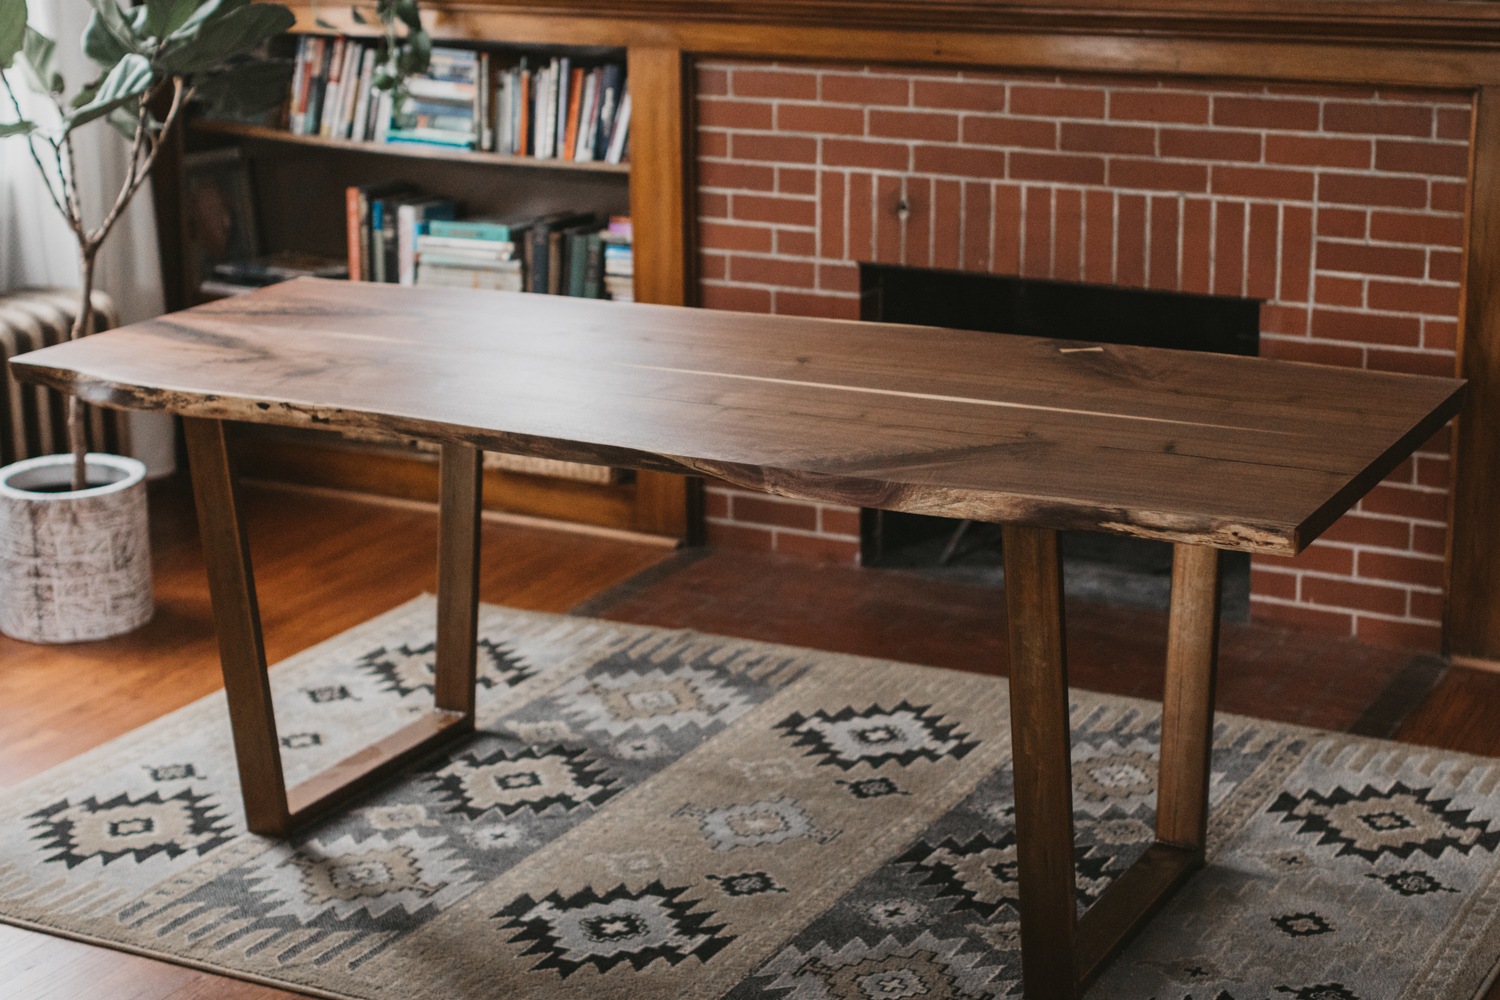 Big Tooth Co_Fort Wayne Indianapolis Woodworking _Walnut Dining Table (1 of 51).jpg